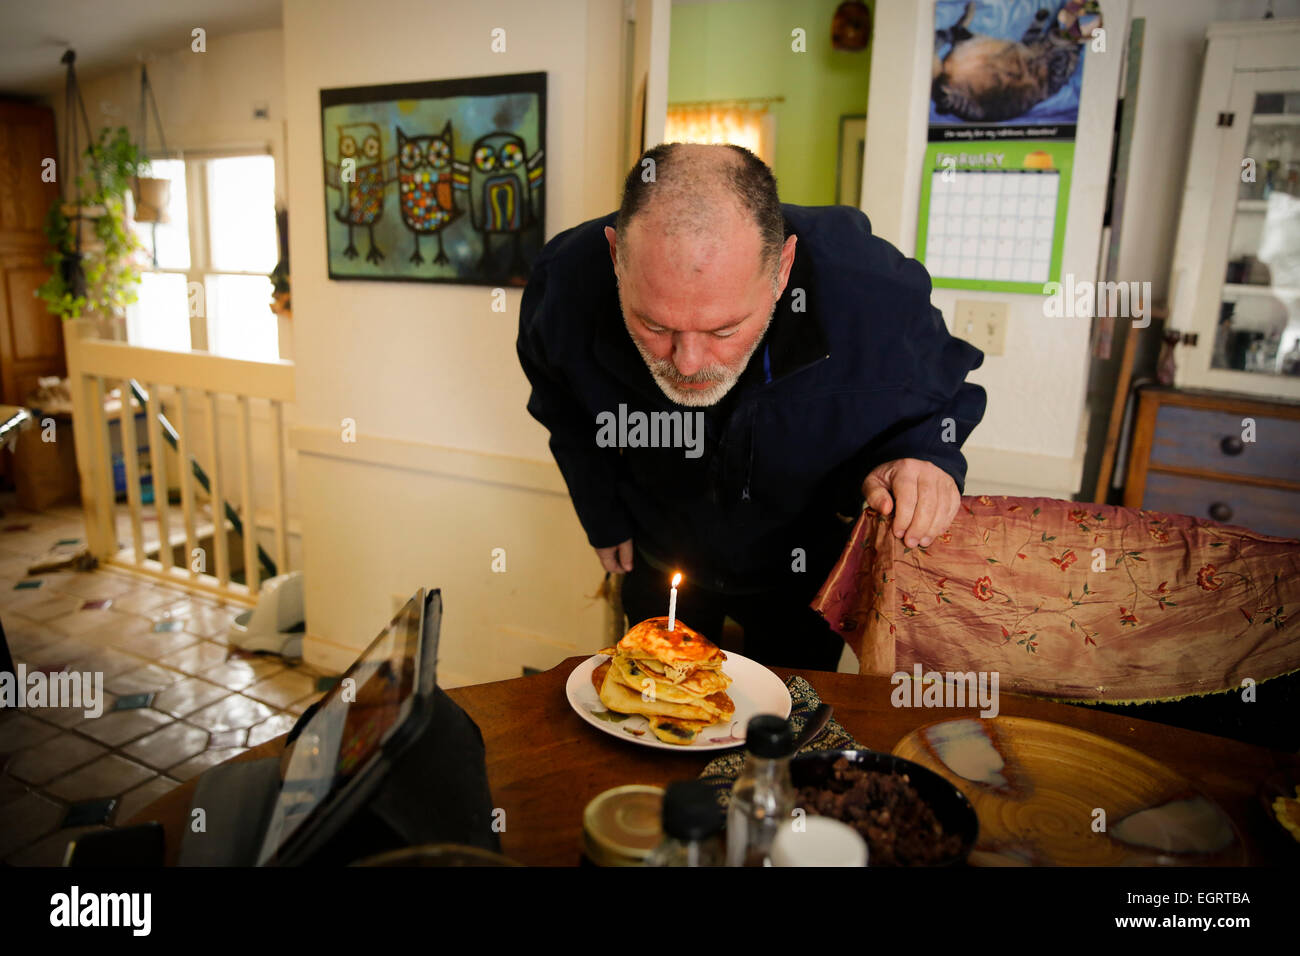 Man in his 50s blowing out candles on birthday pancakes on his birthday - Stock Image